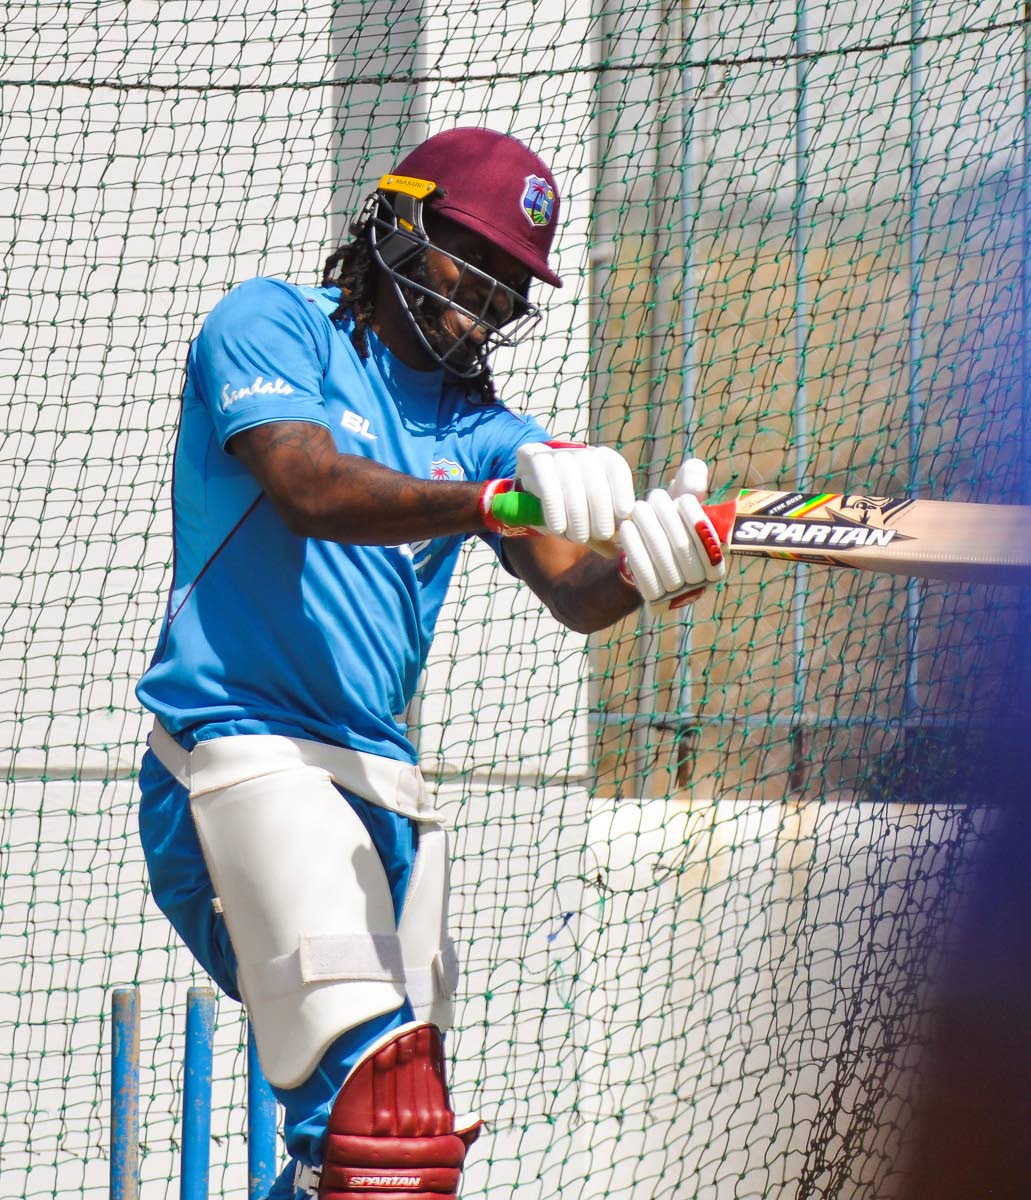 West Indies batsman Chris Gayle takes a knock in the nets at Kensington Oval in Barbados on Sunday. PHOTO COURTESY CWI MEDIA